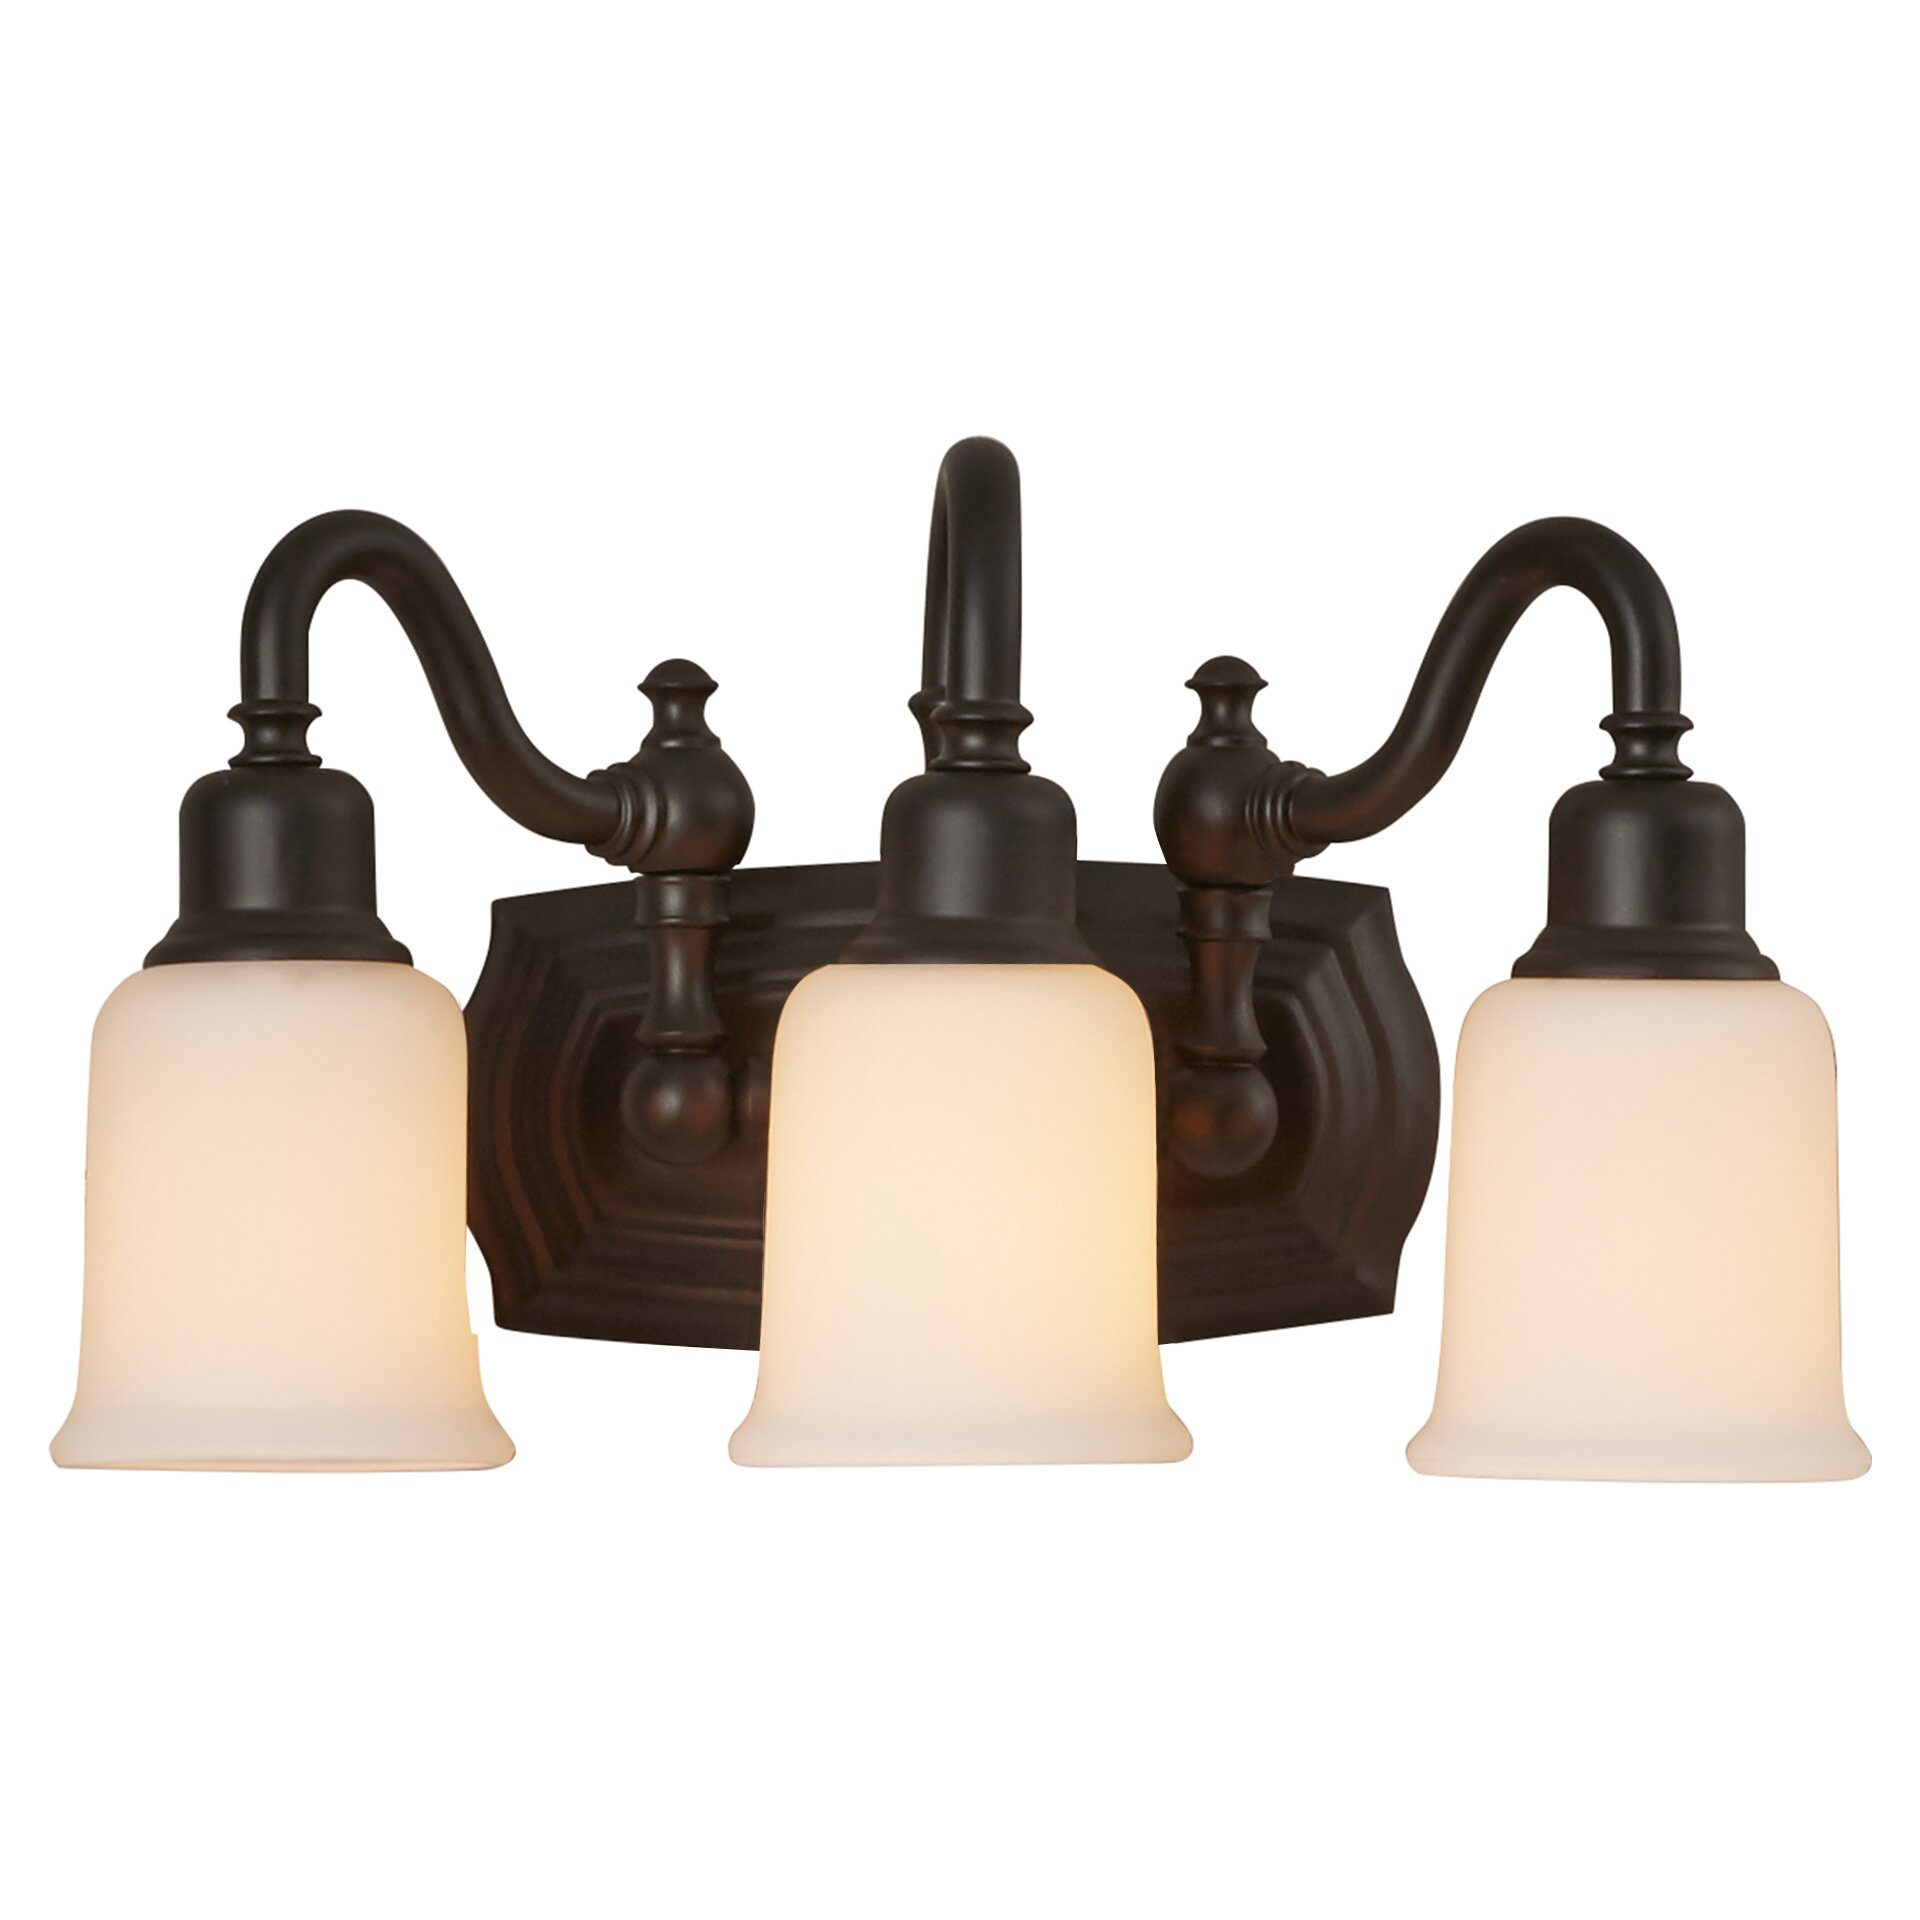 Three Light Bathroom Vanity Light: Darby Home Co Morrison 3 Light Bath Vanity Light & Reviews